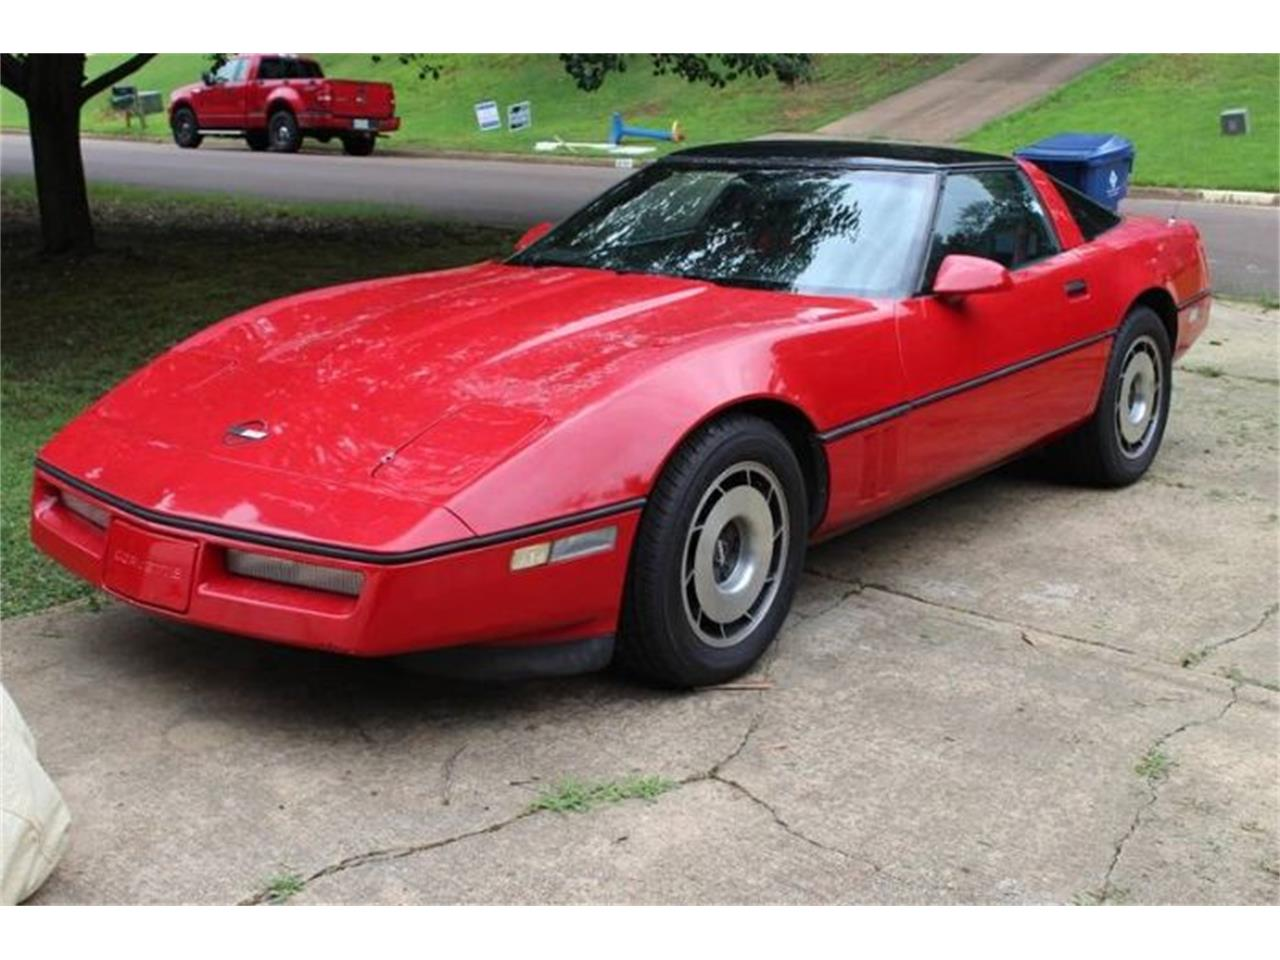 Large Picture of 1985 Chevrolet Corvette located in Michigan - PYZF